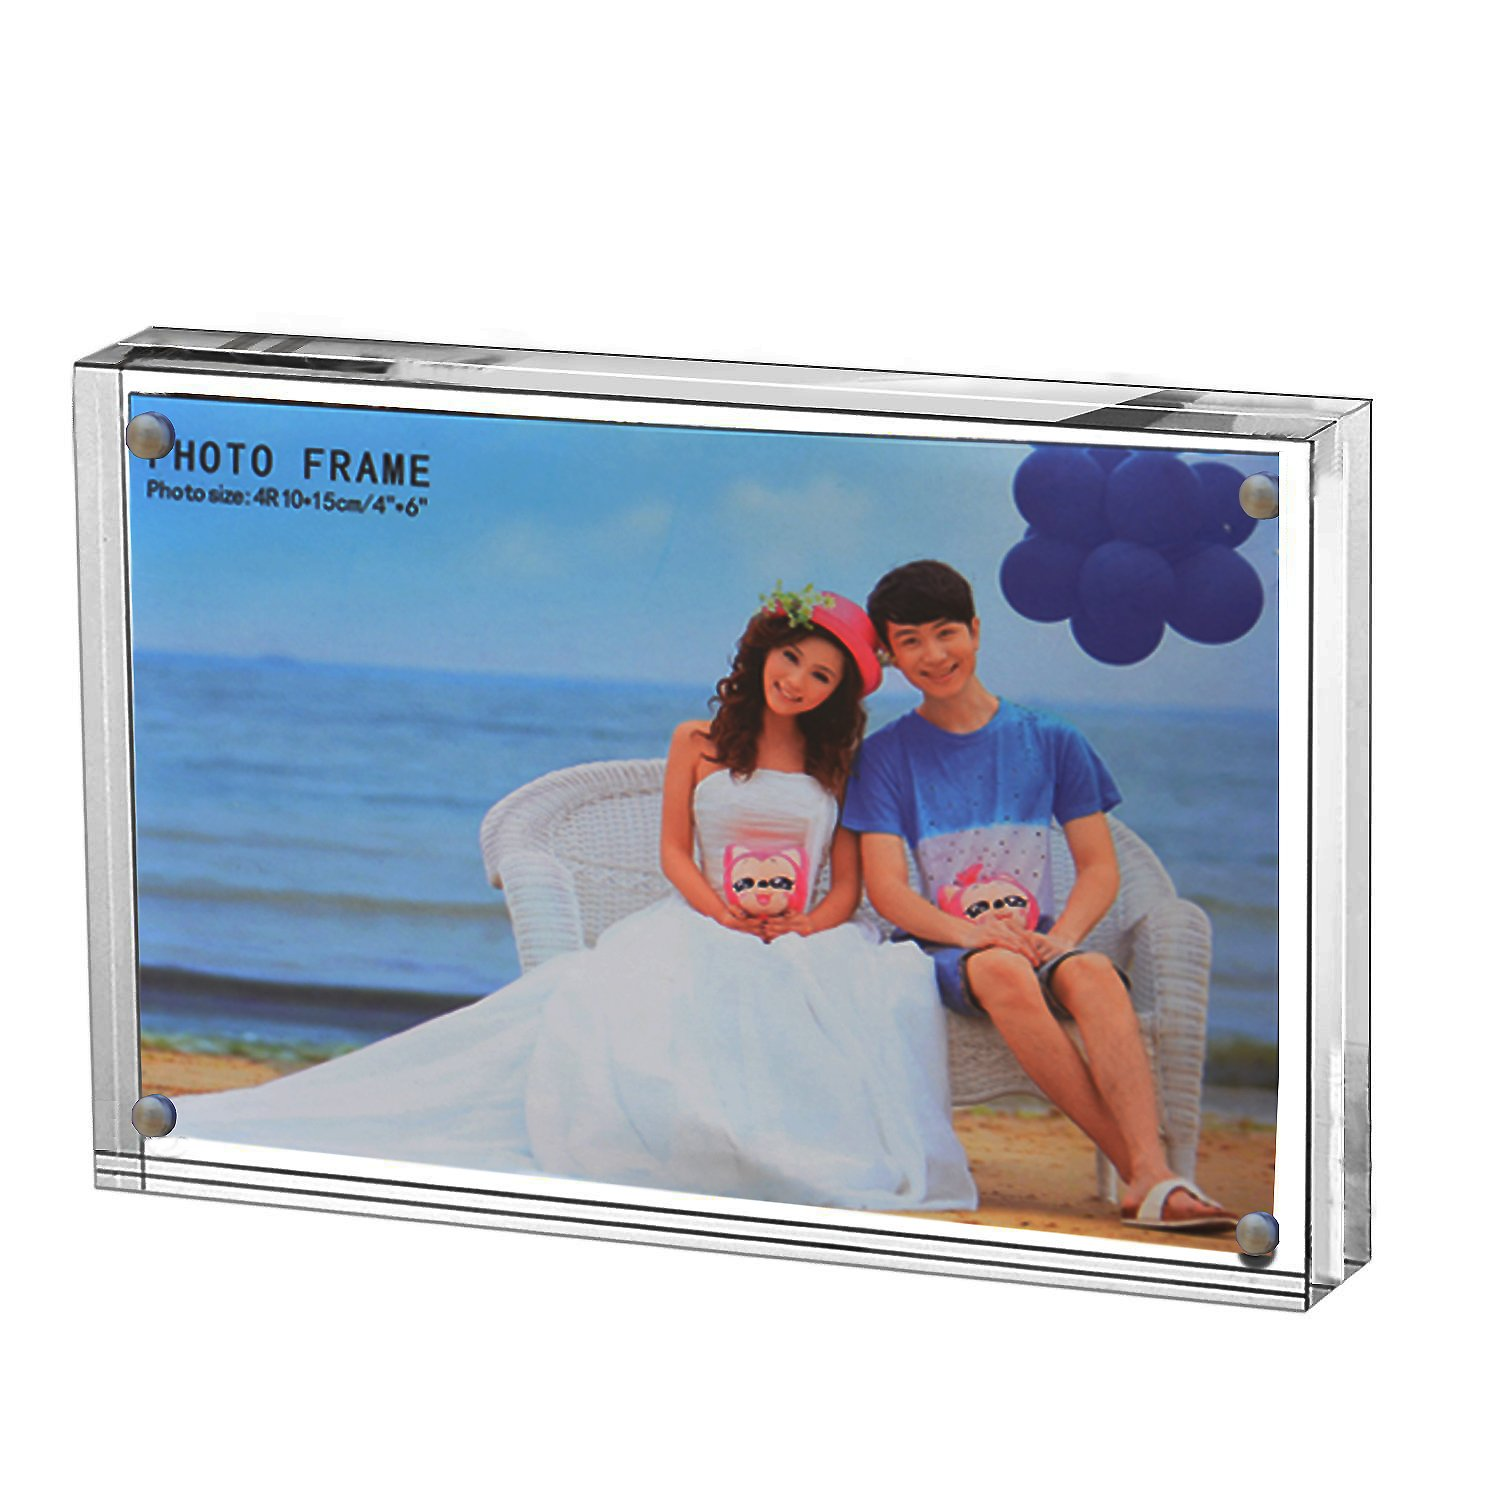 Clear Acrylic Photo Frame,Magnetic Perspex Picture Holders Table Standing Double Side Displays (2.5x3.5'') by Yakri